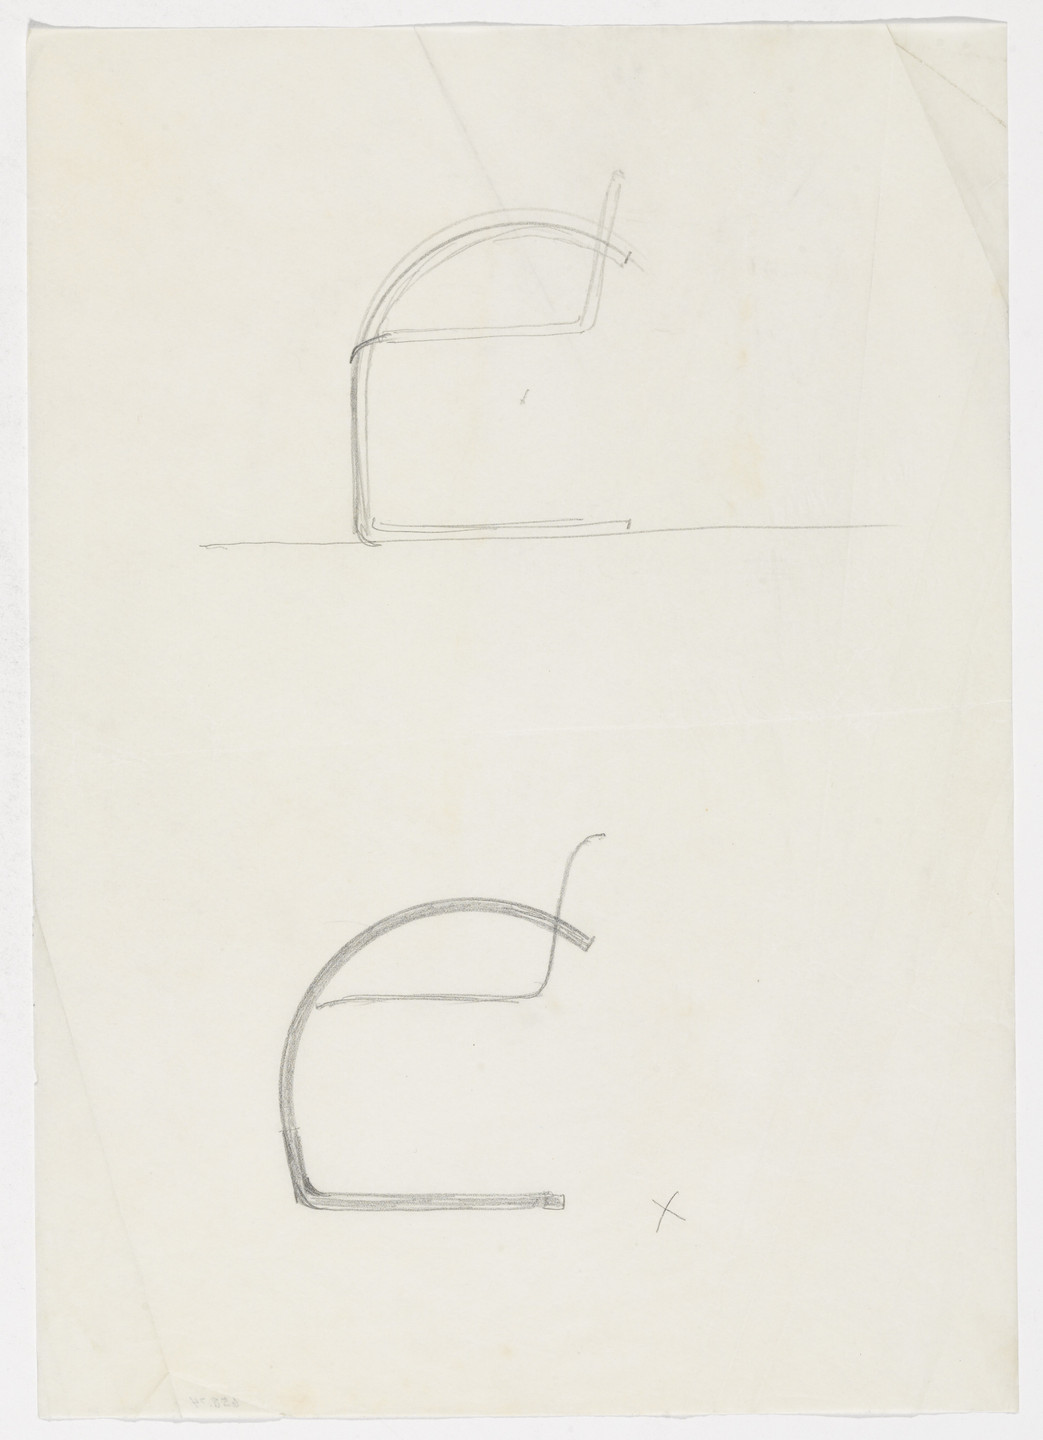 Ludwig Mies van der Rohe. Chair with Arms (Two elevation sketches). early 1930s